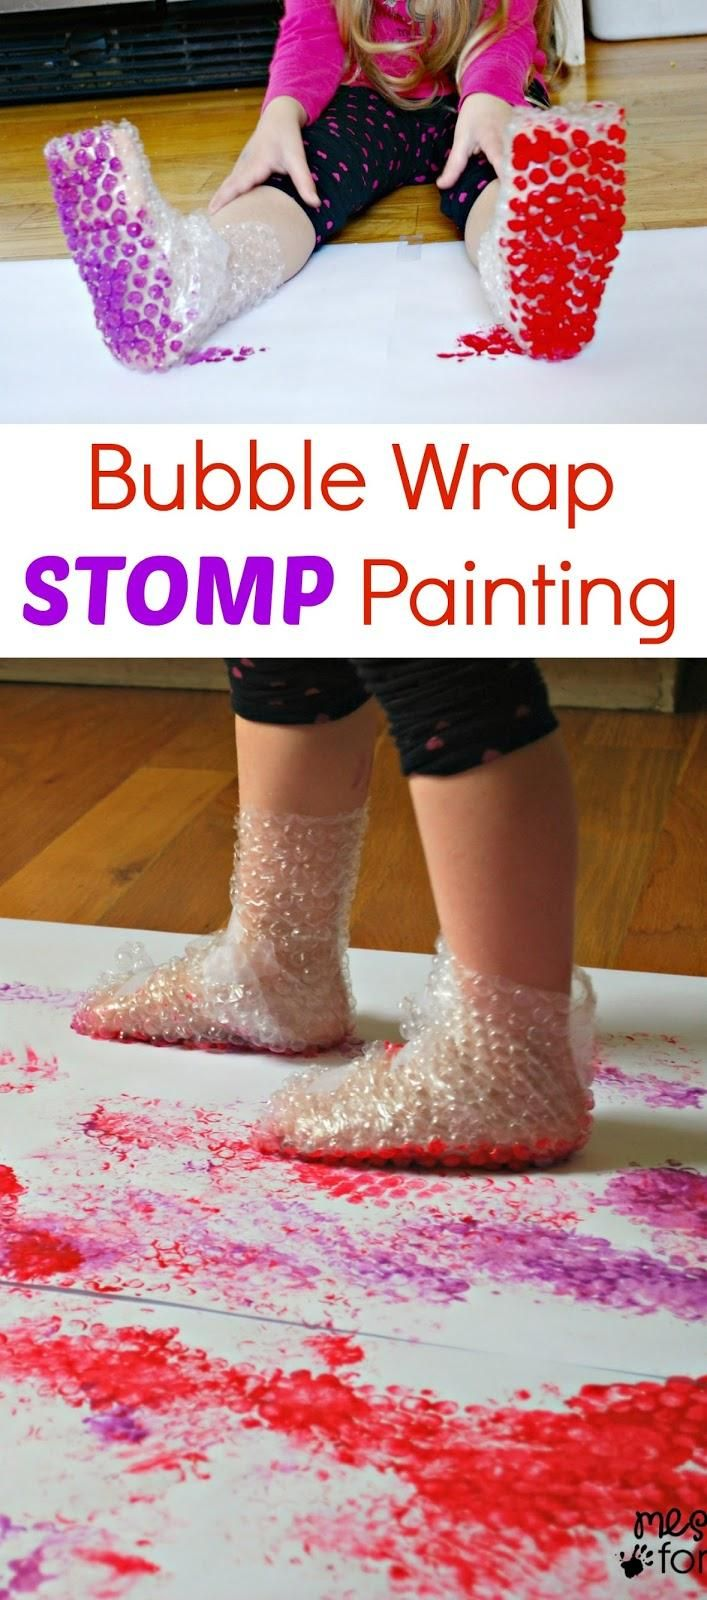 Get the bubble wrap and start stomping with this painting craft!